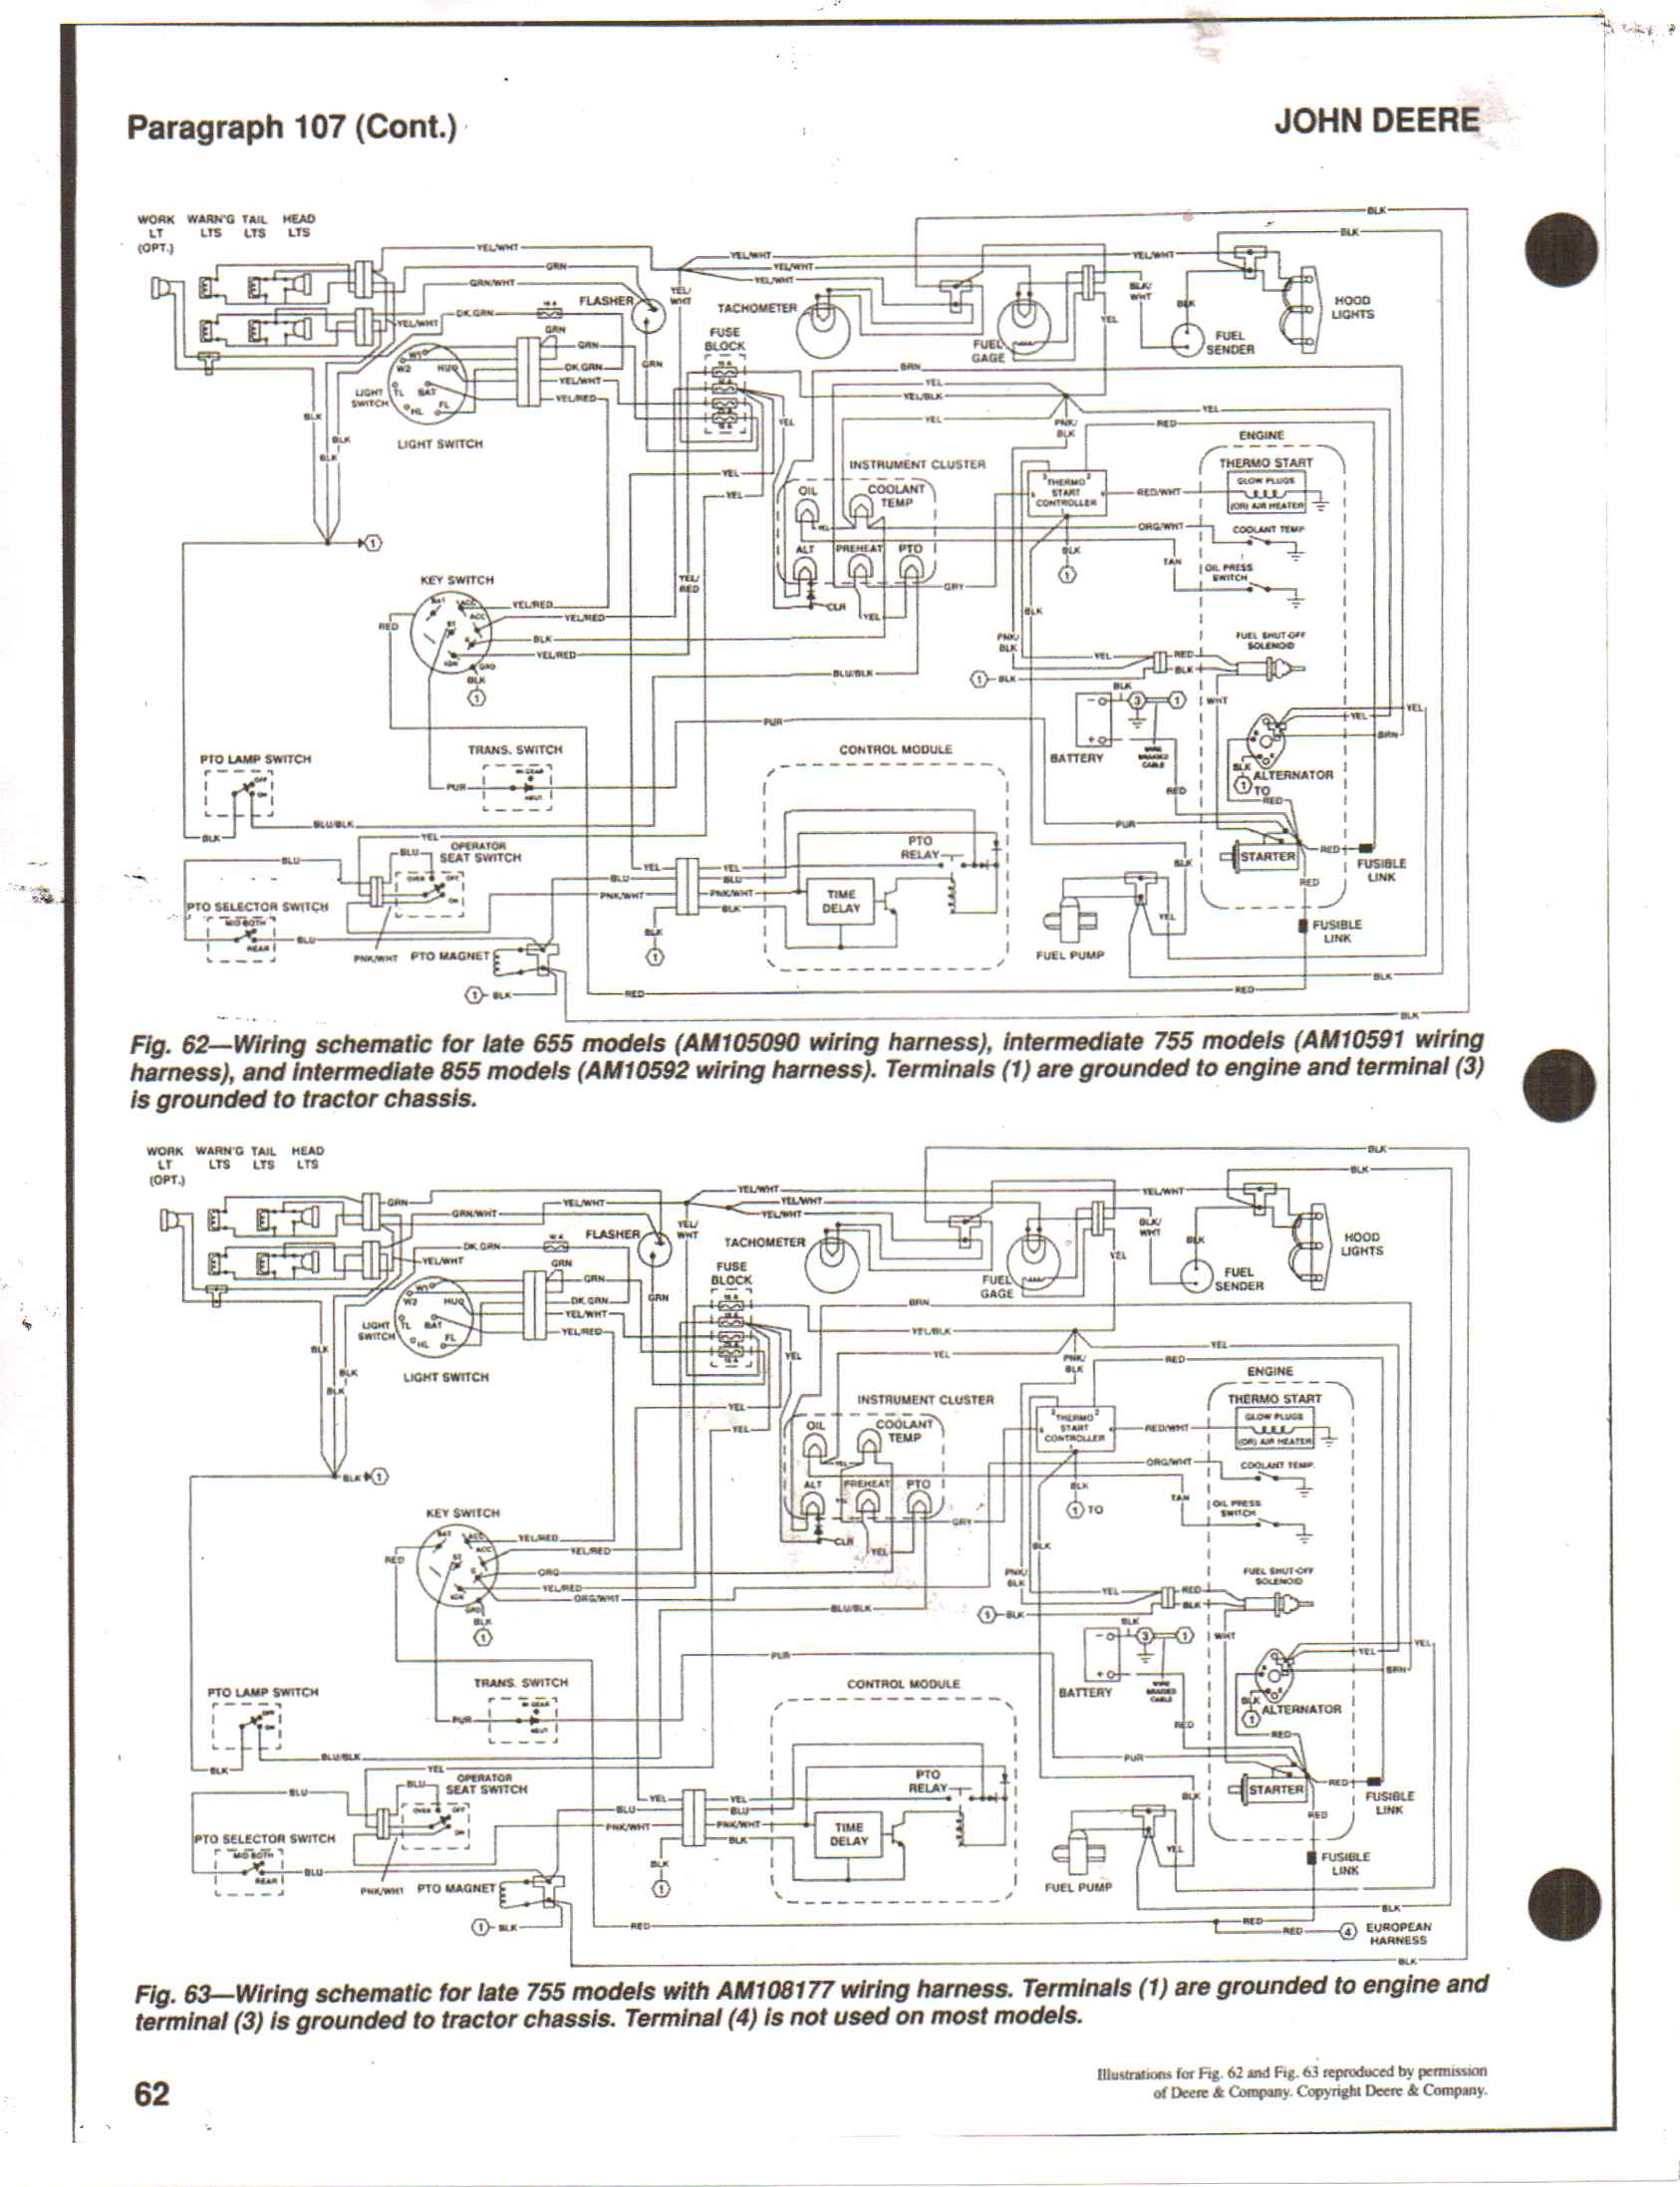 Deere+655+755+wiring+diagram1 John Deere Excavator Ignition Switch Wiring Diagram on john deere gator ignition switch diagram, exmark ignition switch wiring diagram, john deere 322 wiring-diagram, john deere 212 wiring-diagram, simplicity ignition switch wiring diagram, john deere 155c wiring-diagram, onan ignition switch wiring diagram, jlg ignition switch wiring diagram, vw ignition switch wiring diagram, john deere lt133 voltage regulator, john deere 1020 wiring-diagram, sterling ignition switch wiring diagram, volvo ignition switch wiring diagram, bombardier ignition switch wiring diagram, john deere 145 wiring-diagram, yanmar ignition switch wiring diagram, troy bilt ignition switch wiring diagram, john deere lx255 wiring-diagram, yamaha outboard ignition switch wiring diagram, john deere m wiring-diagram,